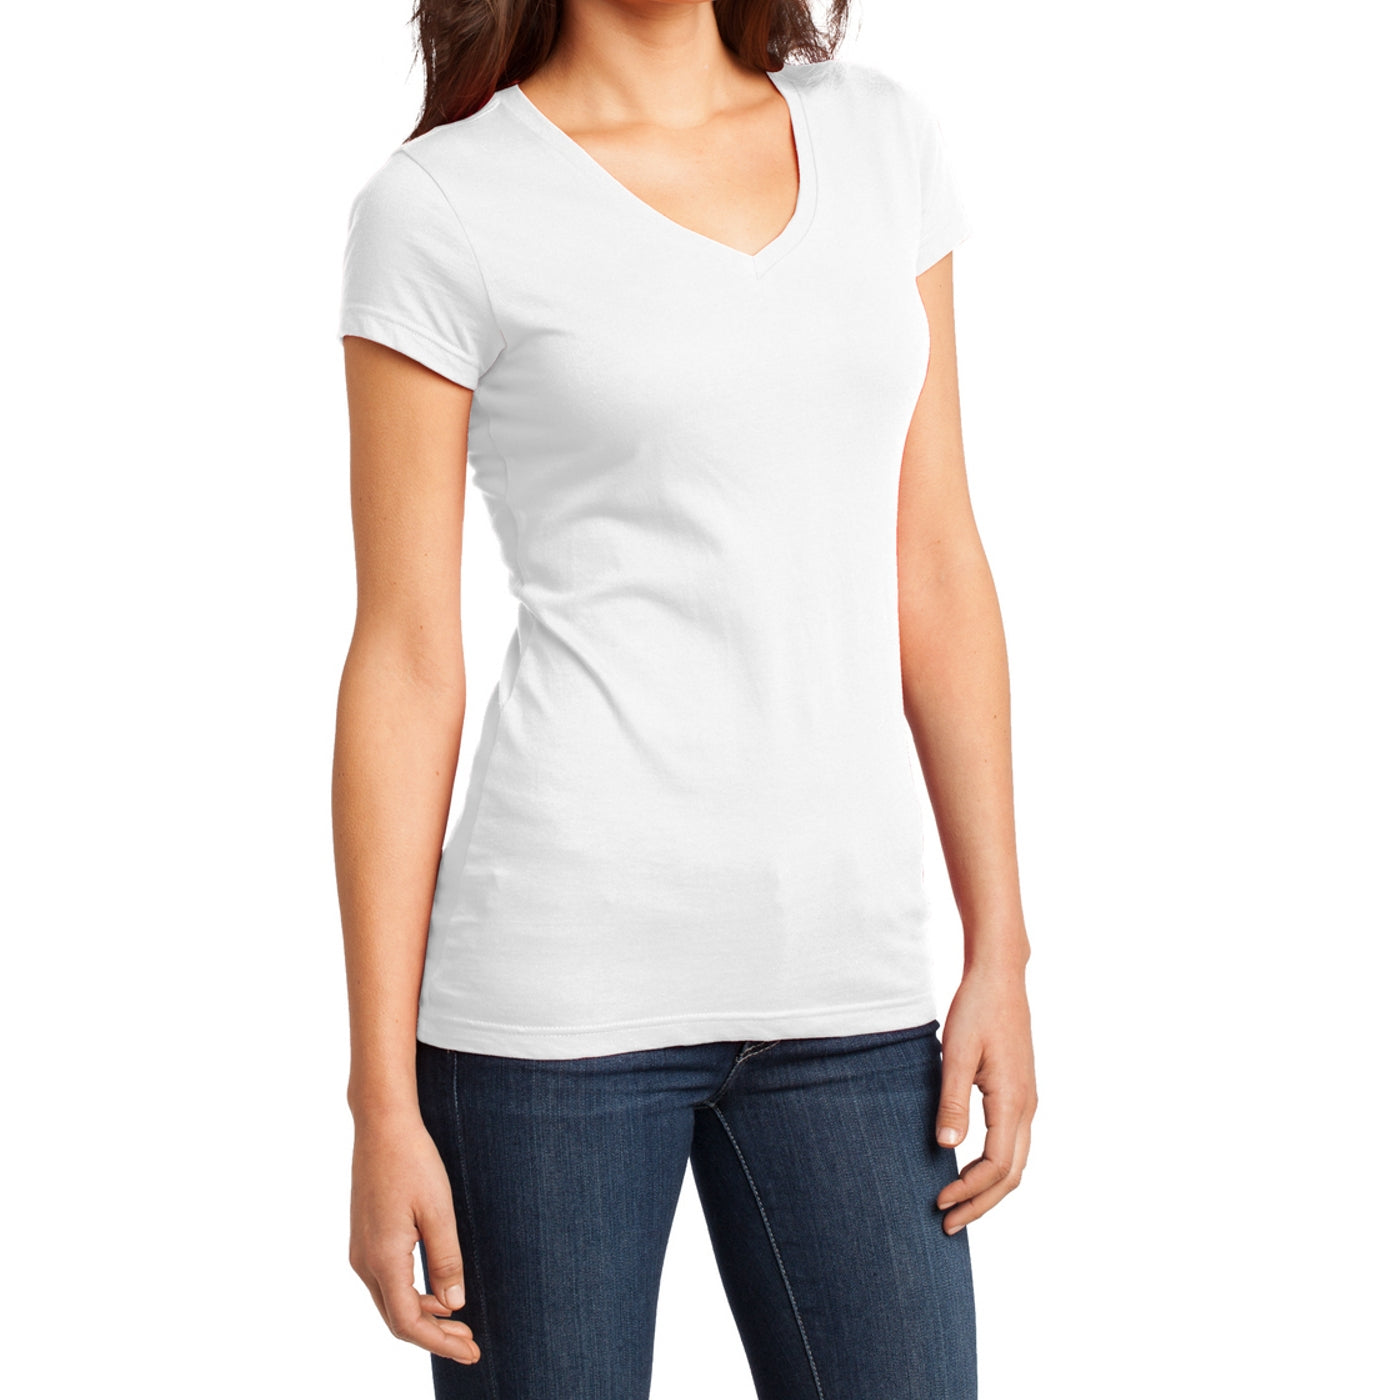 Women's Juniors Very Important Tee V-Neck - White